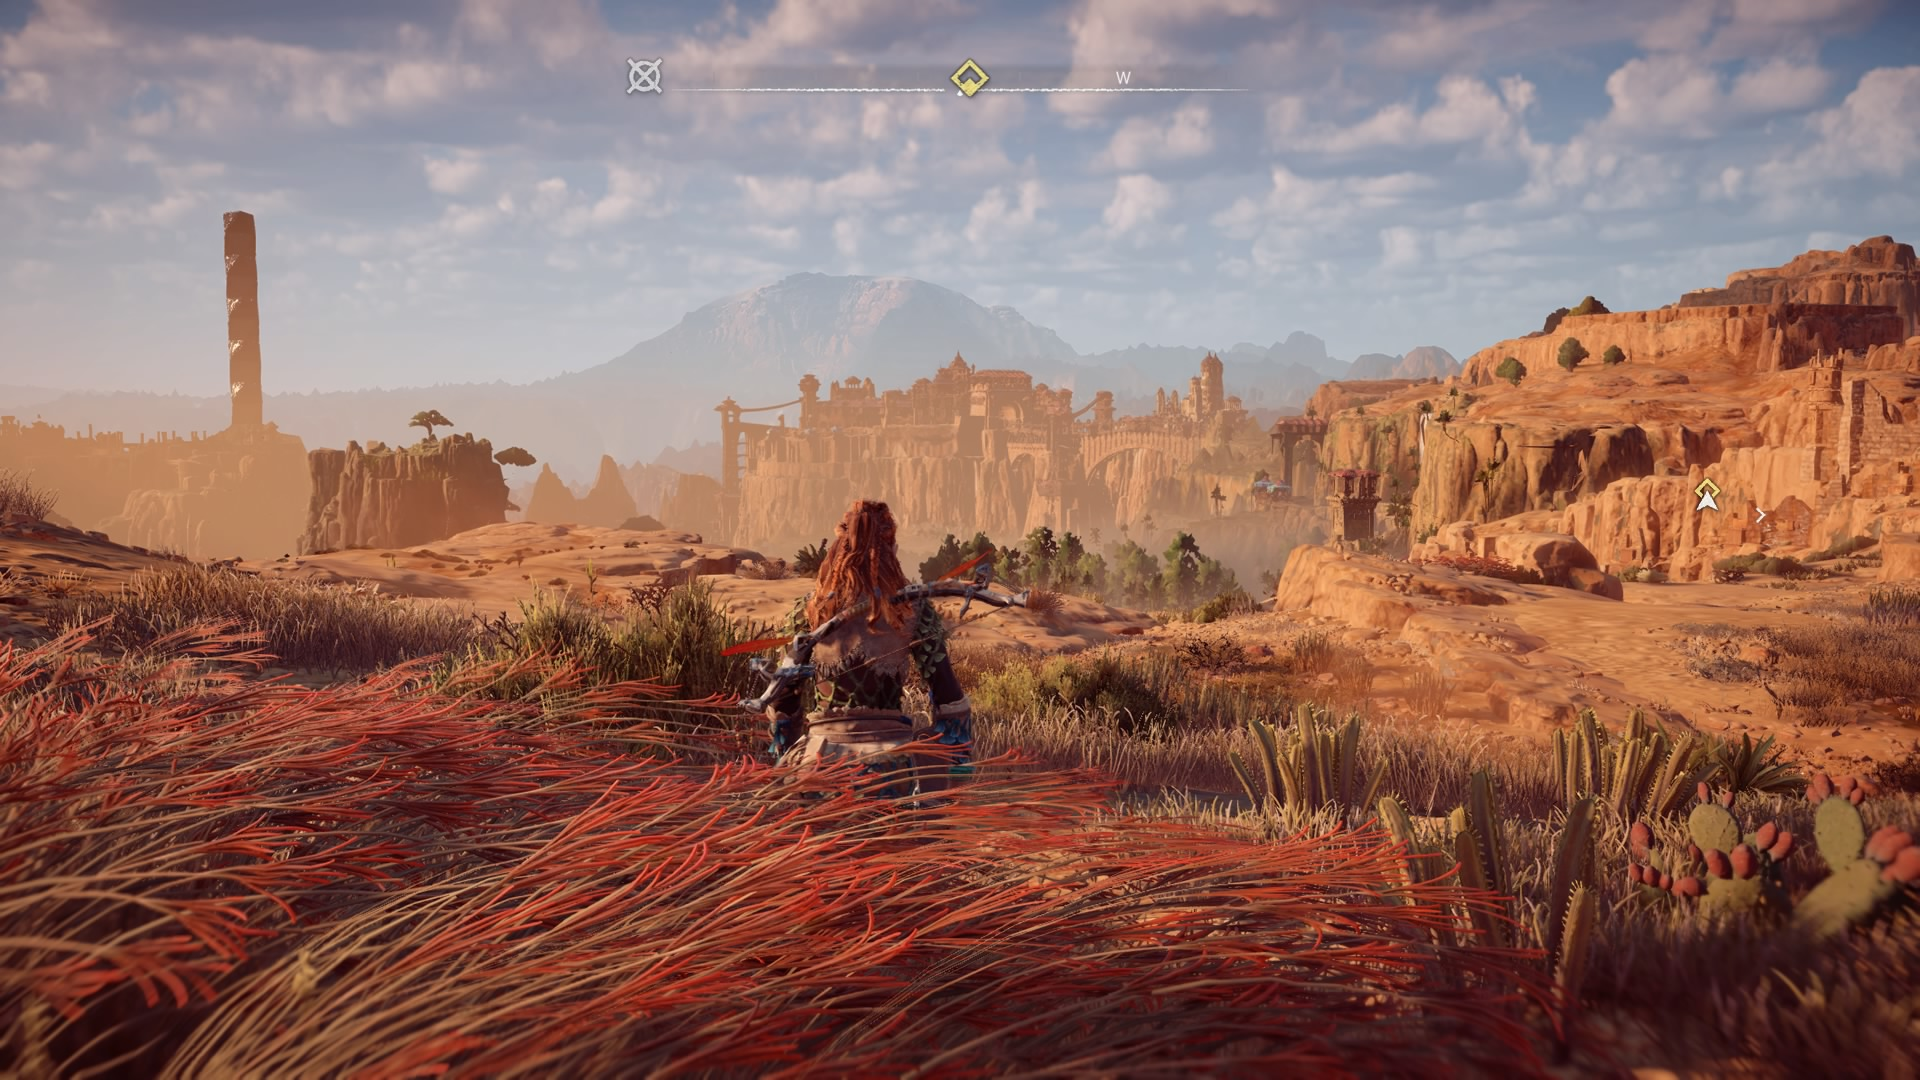 The open-world adventure <em>Horizon Zero Dawn</em>is widely regarded as one of the PS4's greatest hits.